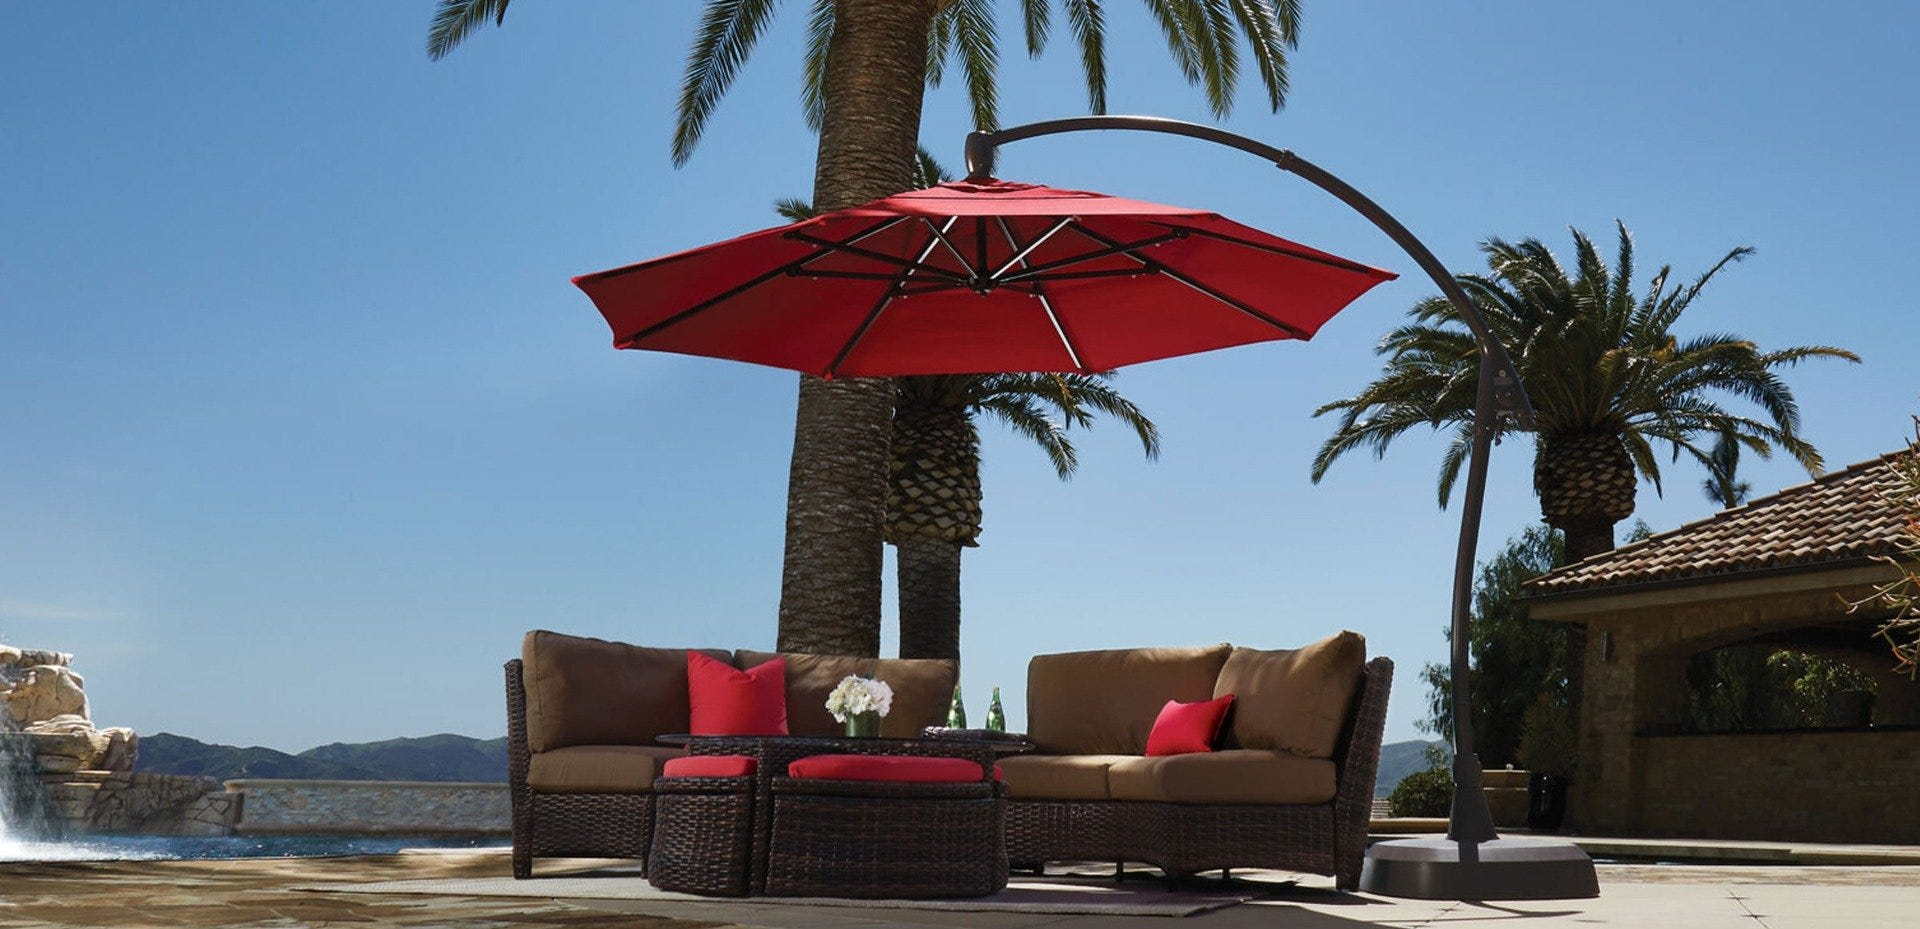 5 Things To Consider When Buying A Patio Umbrella